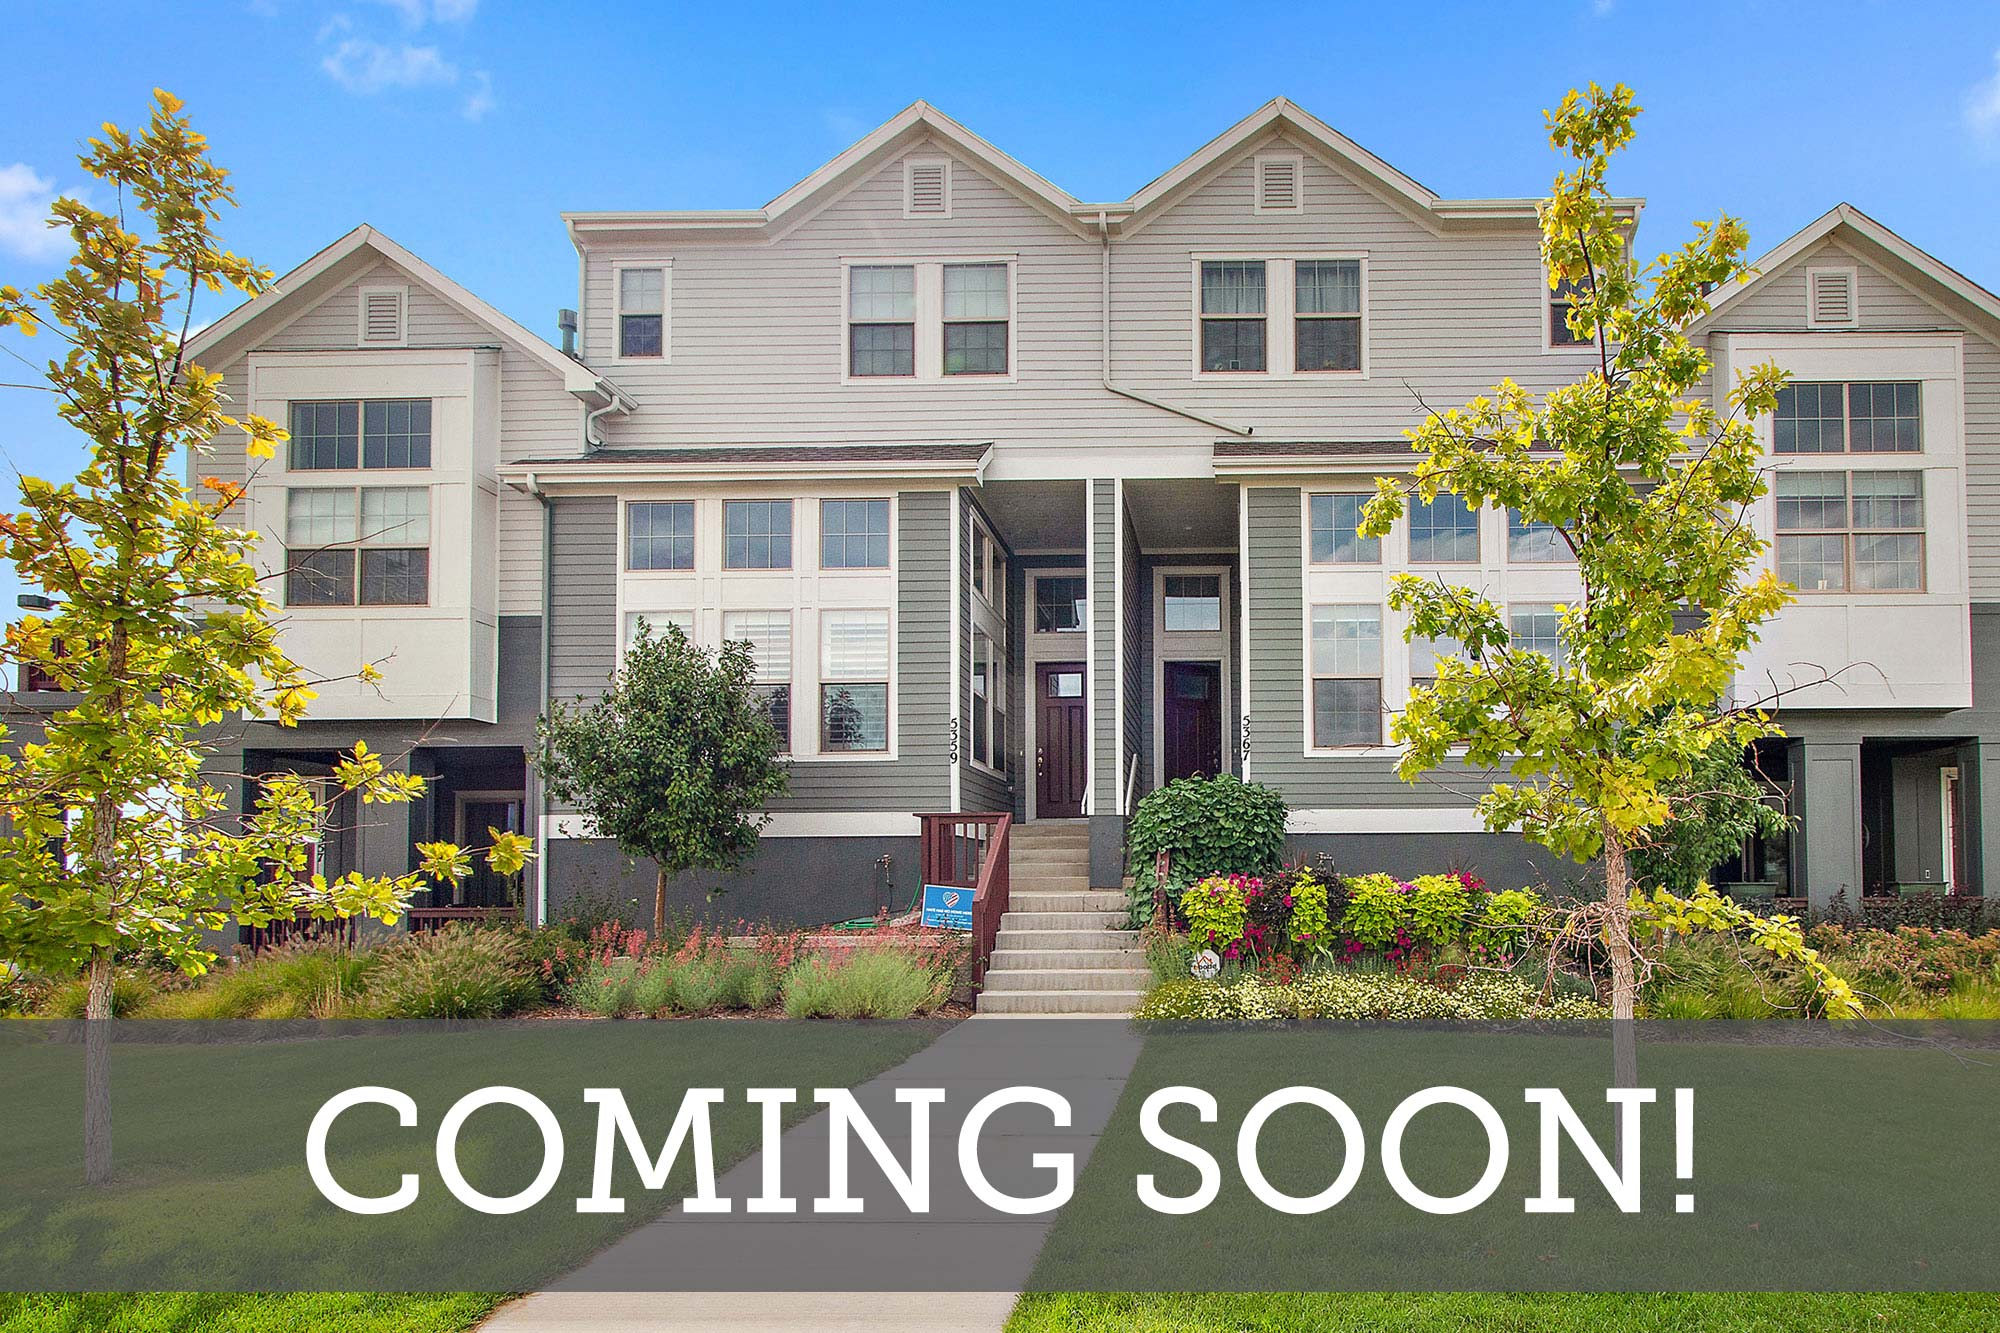 Central Park Row Homes - Coming Soon